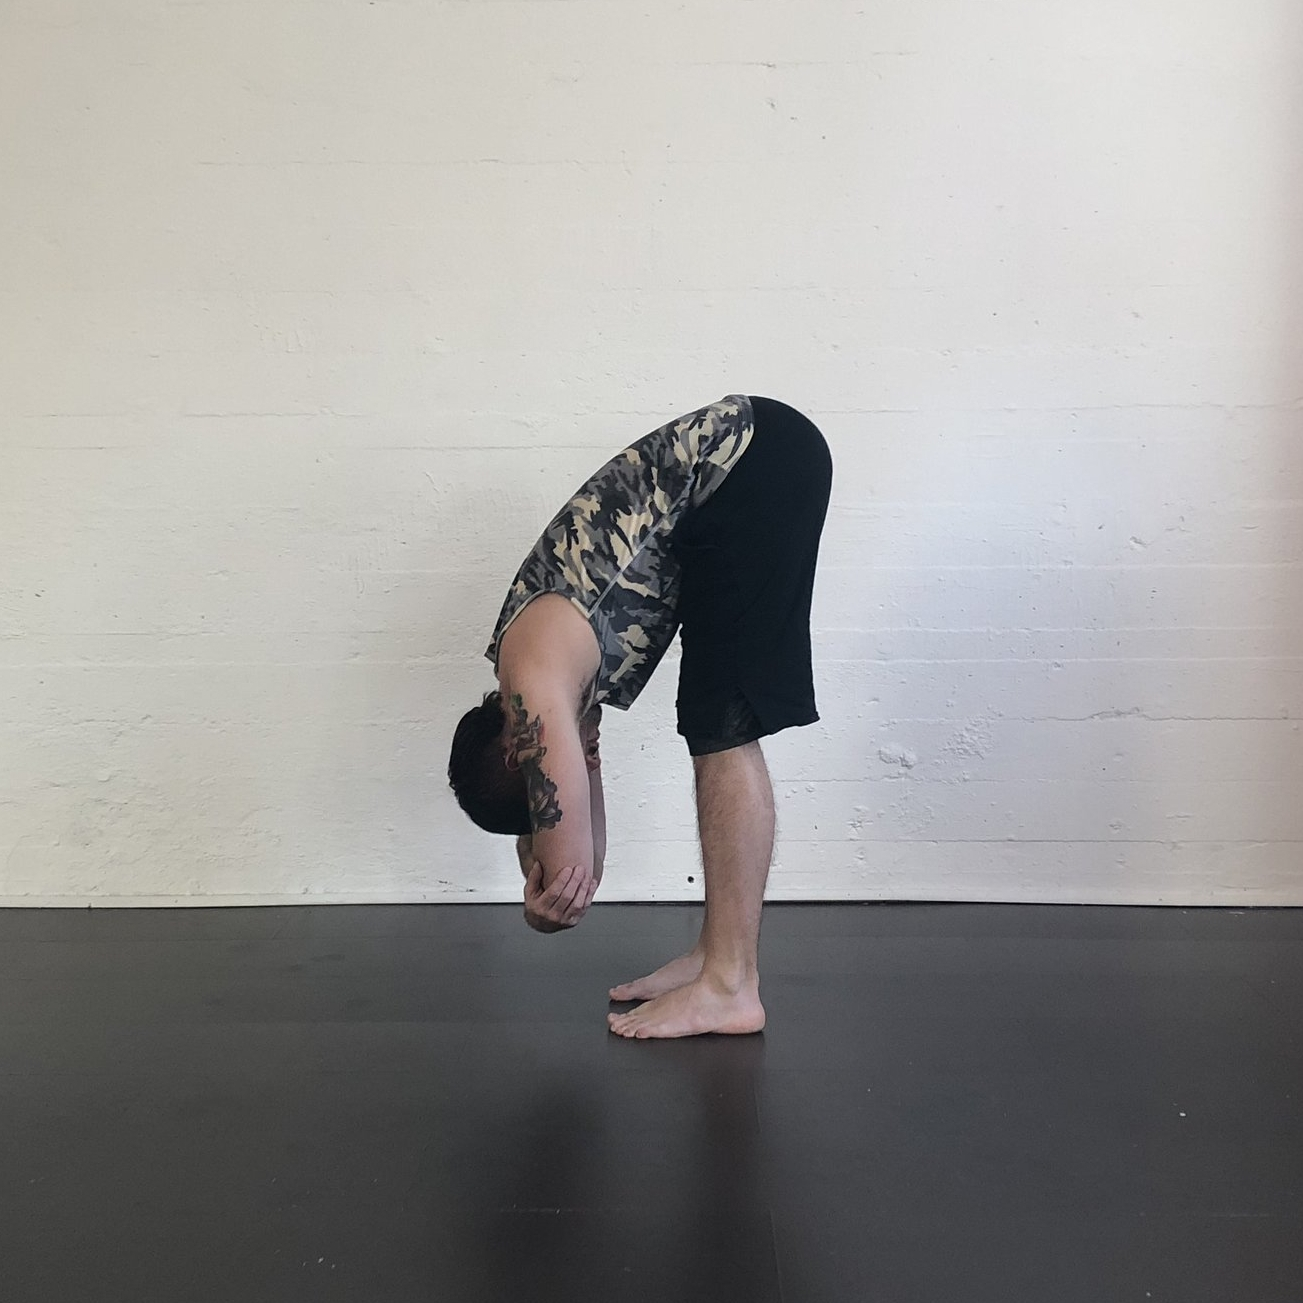 Ragdoll  - Stand with your feet wider than your hips.  With your knees bent, hand your torso over your legs.  Hold opposite elbows and drape your spine down your legs.  Allow your spine to length and close your eyes. Let each breath lengthen and loosen and release tension